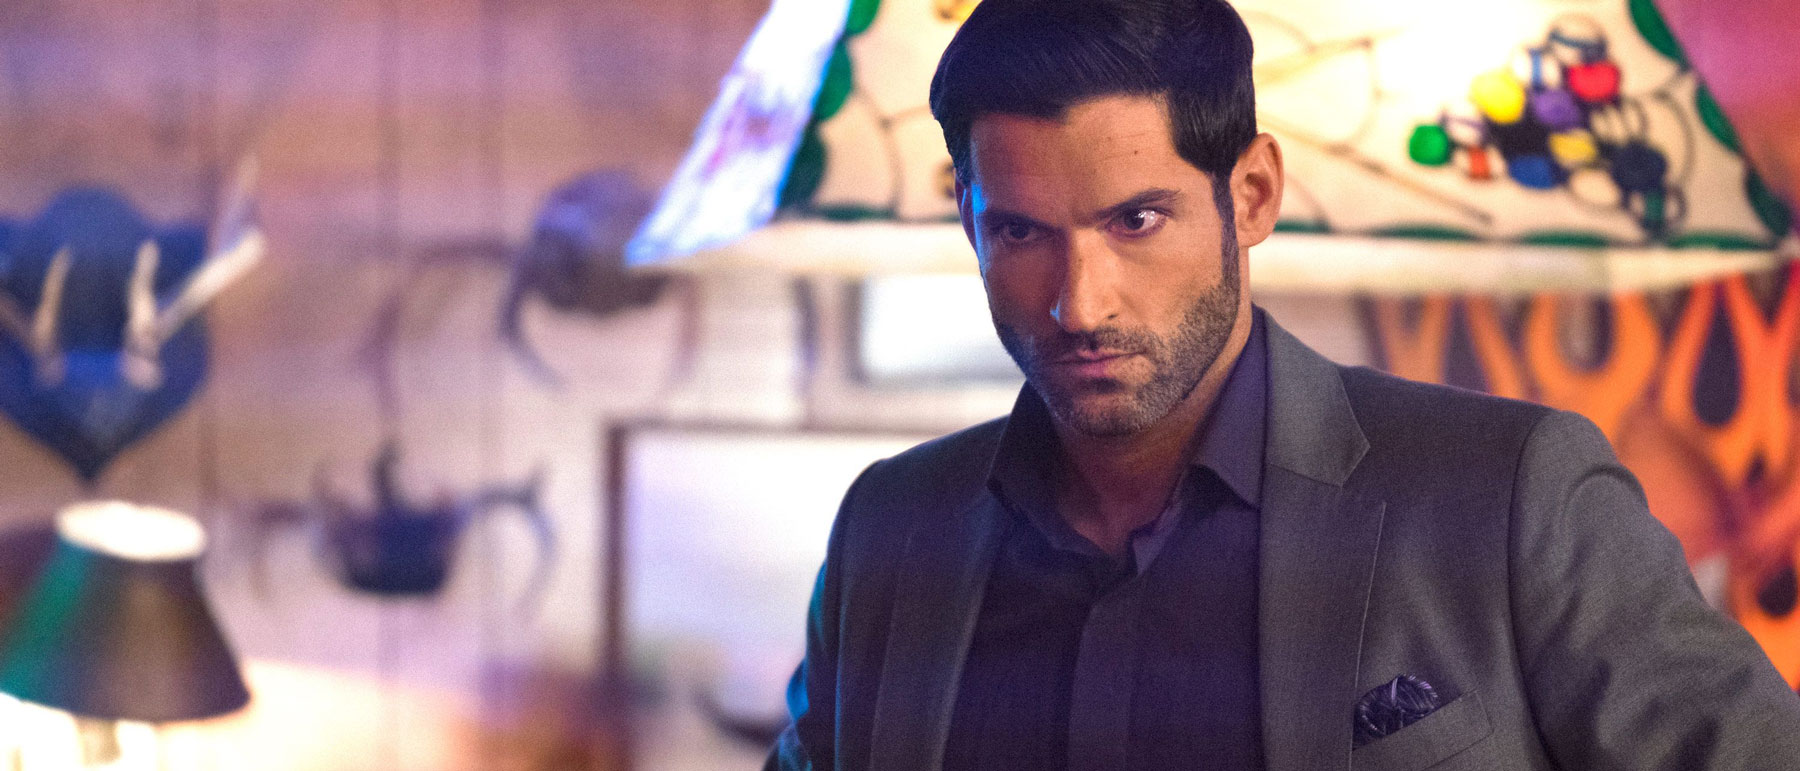 Netflix Lucifer season 5 tom ellis release date